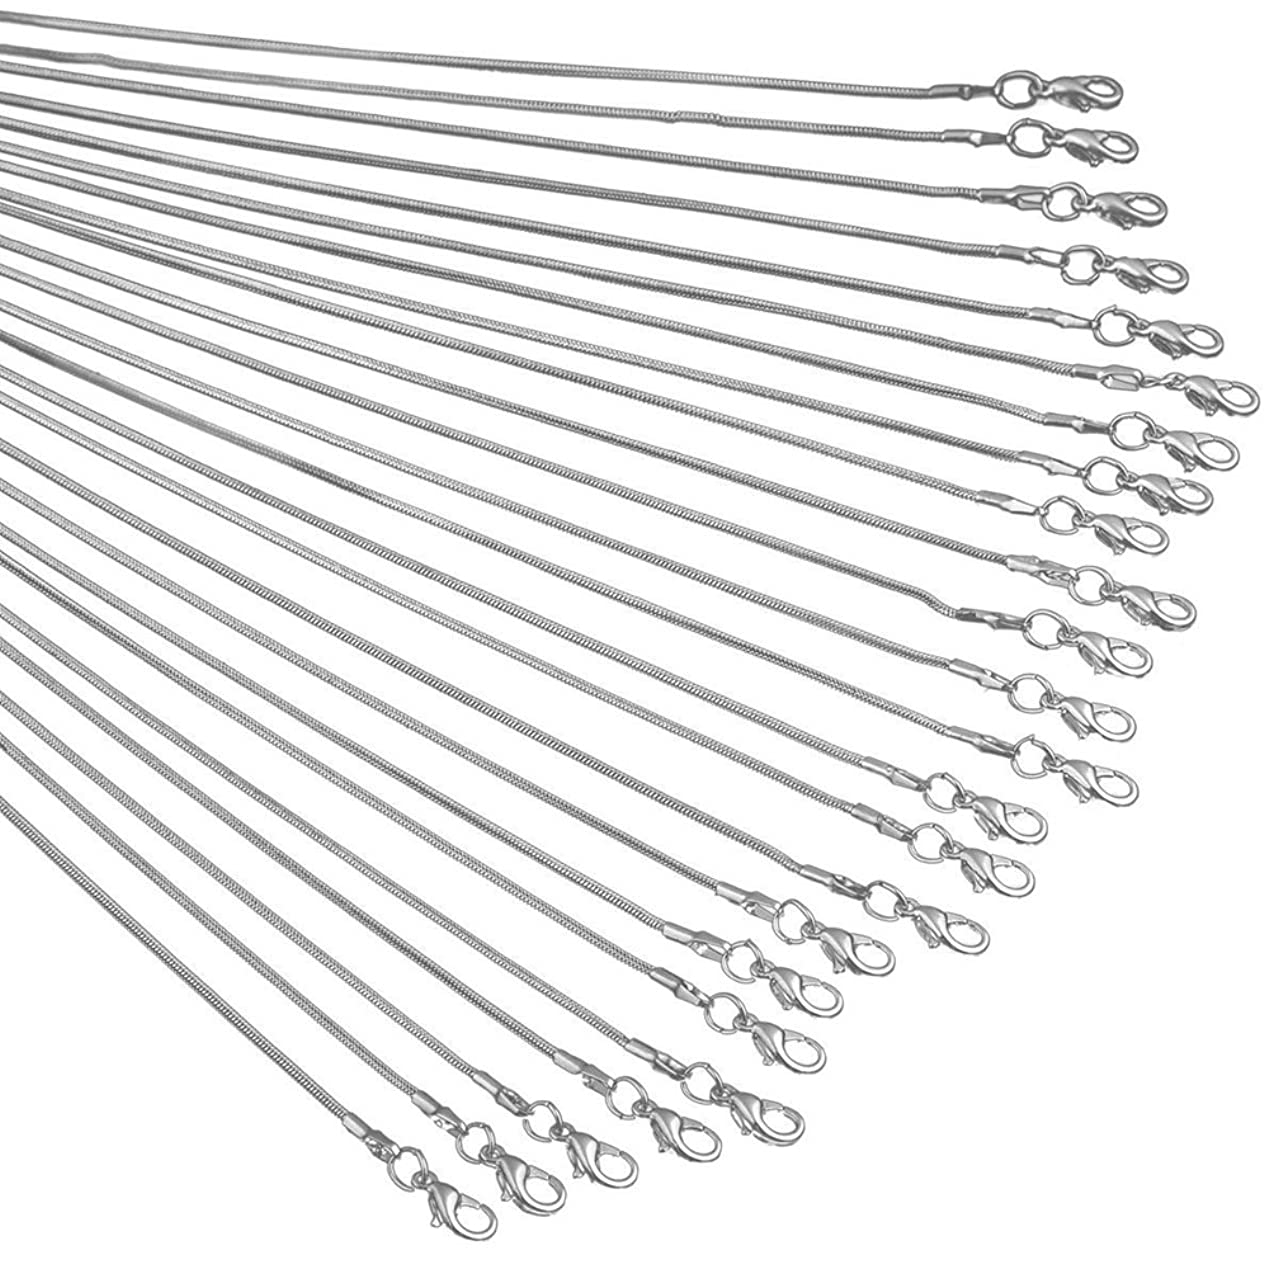 Snake Chains Necklace 24pcs 925 Silver Plated 1.2mm DIY Charms Link with Lobster Clasps for Jewelry Making (16 inch)